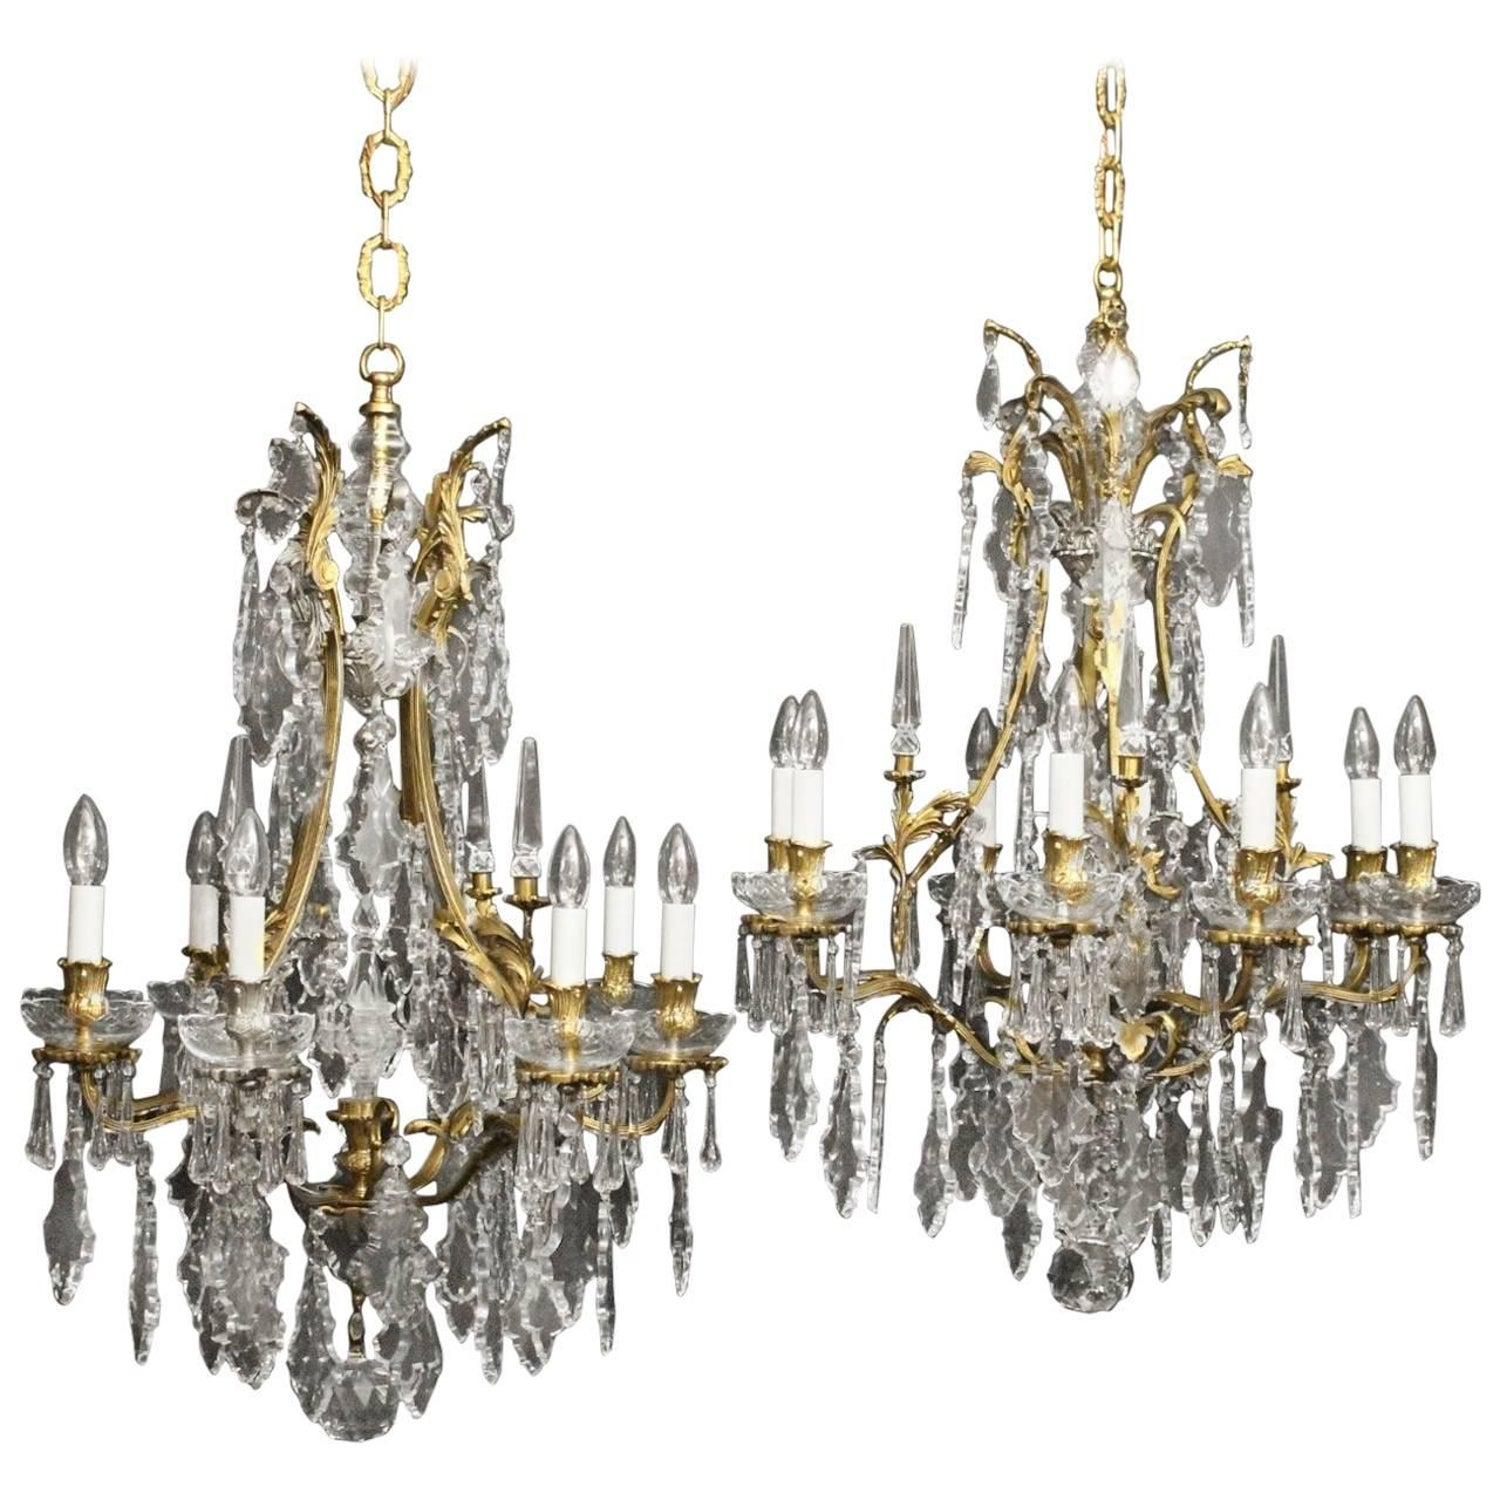 French gold leaf tole chandelier for sale at 1stdibs french pair of gilded bronze and crystal antique chandeliers arubaitofo Choice Image